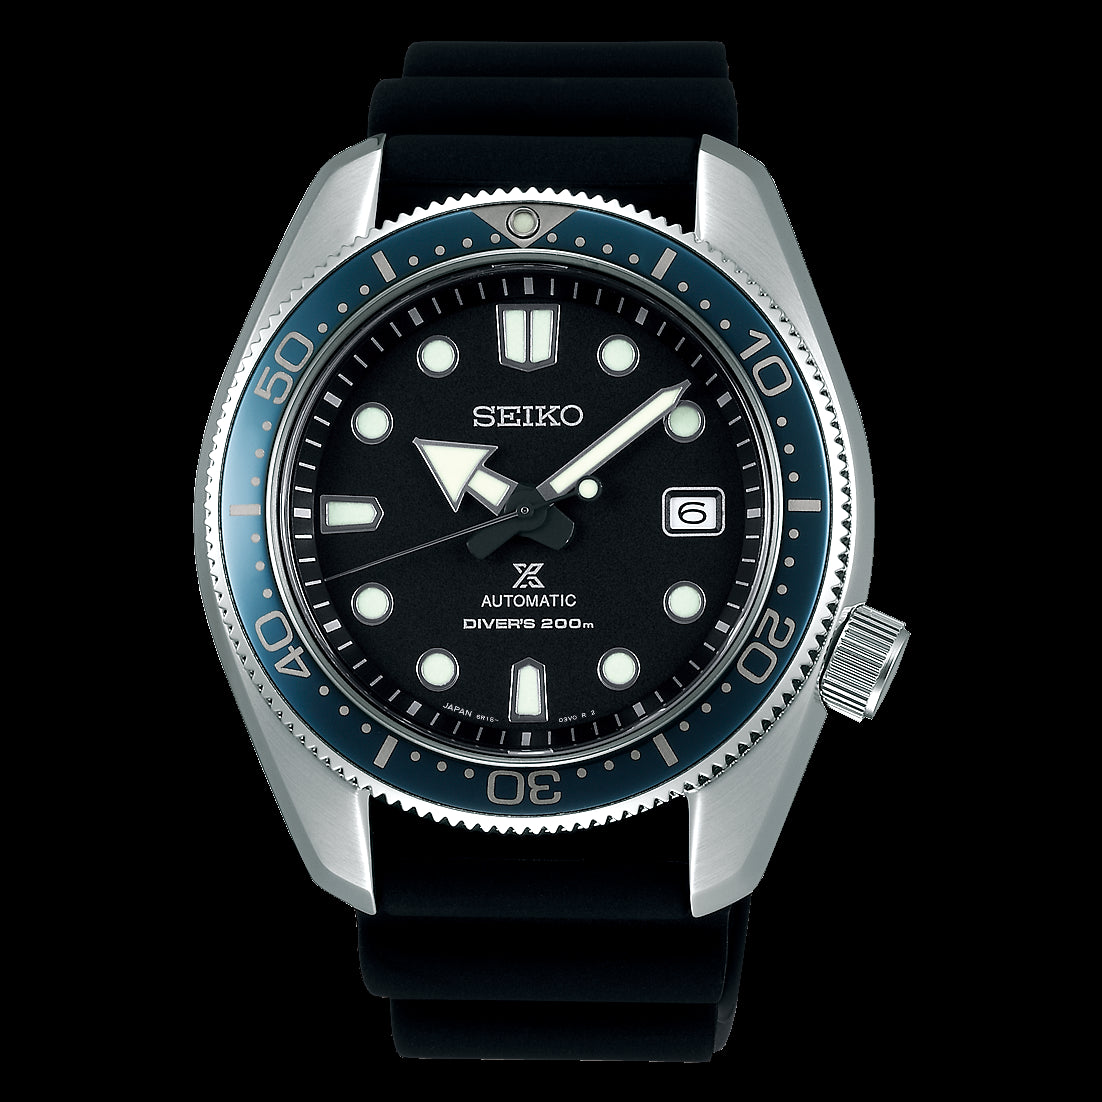 The Seiko SPB079 Prospex Dive Watch